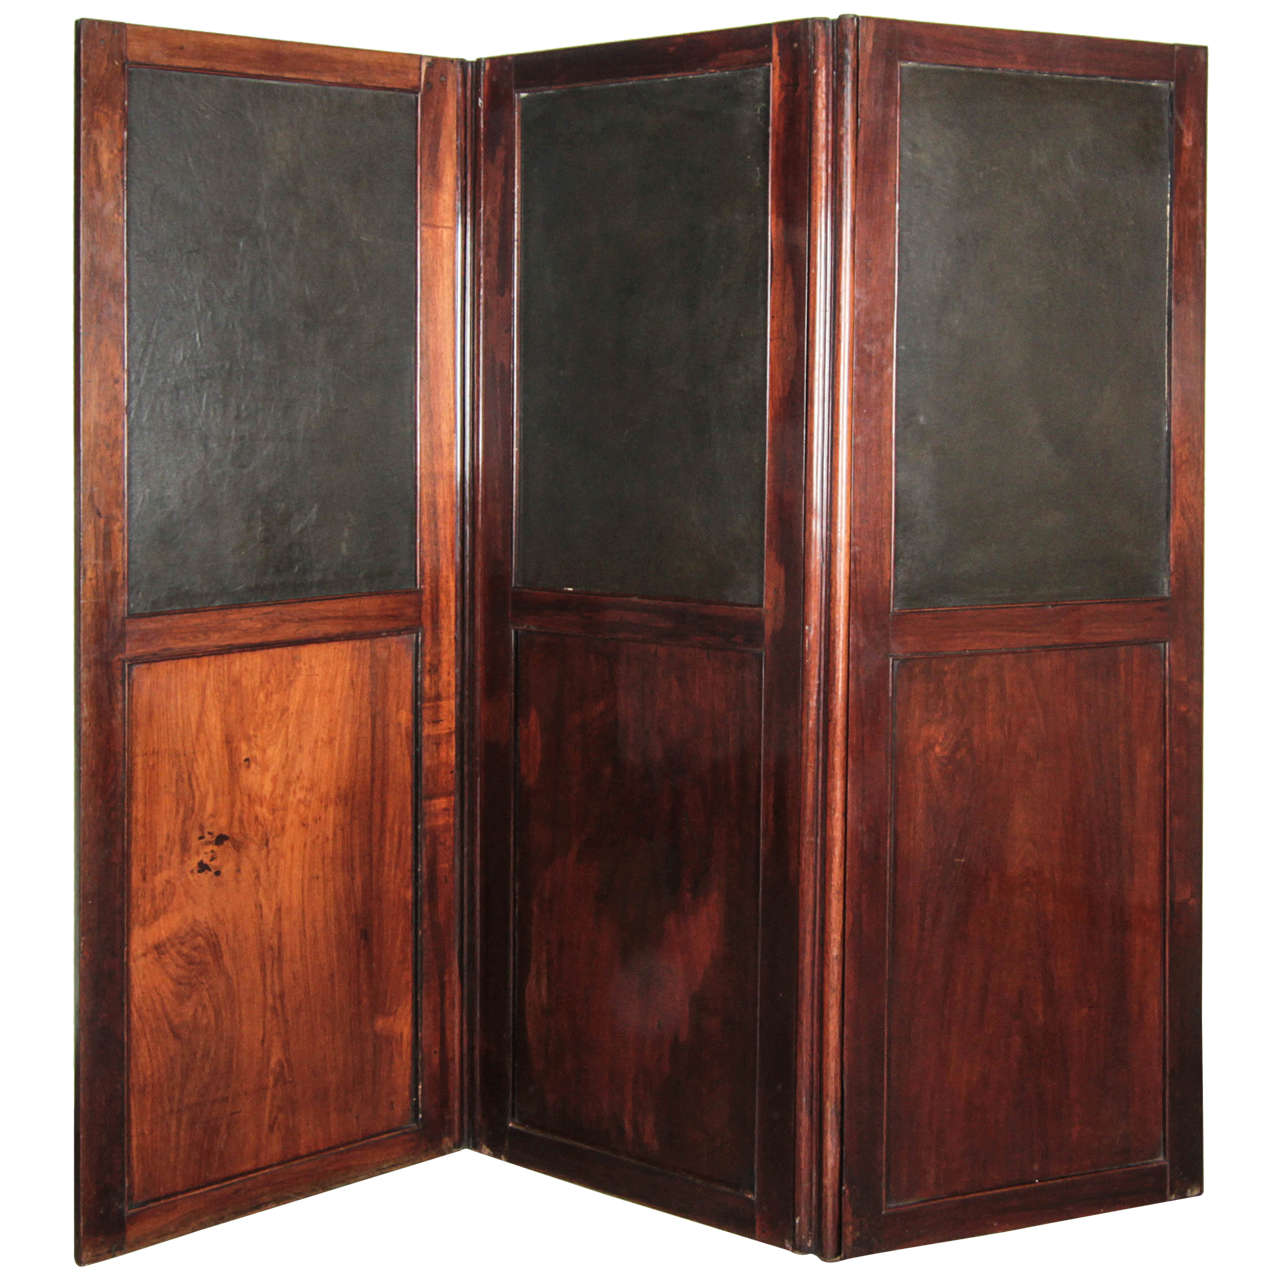 Wood and Leather Room Divider